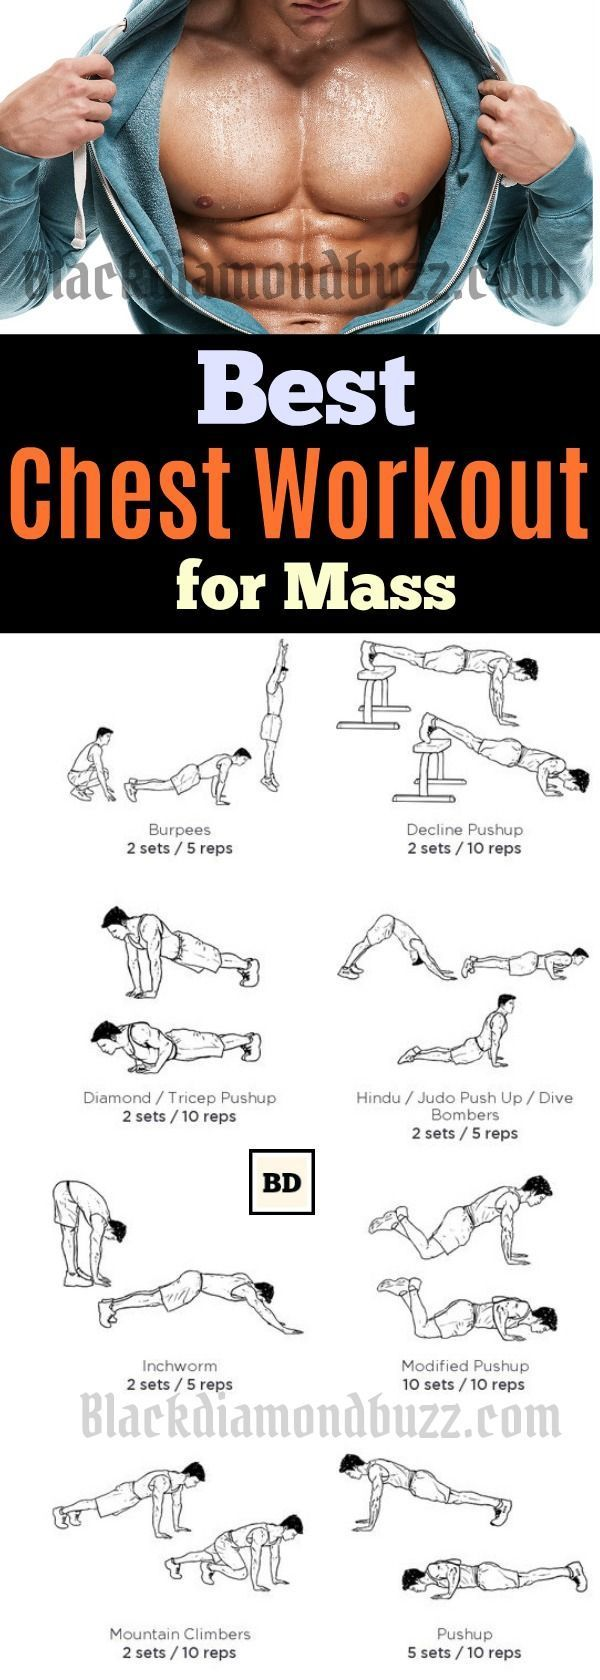 Chest Workout Routine for Mass - 10 Best Chest Workout for Men at ...